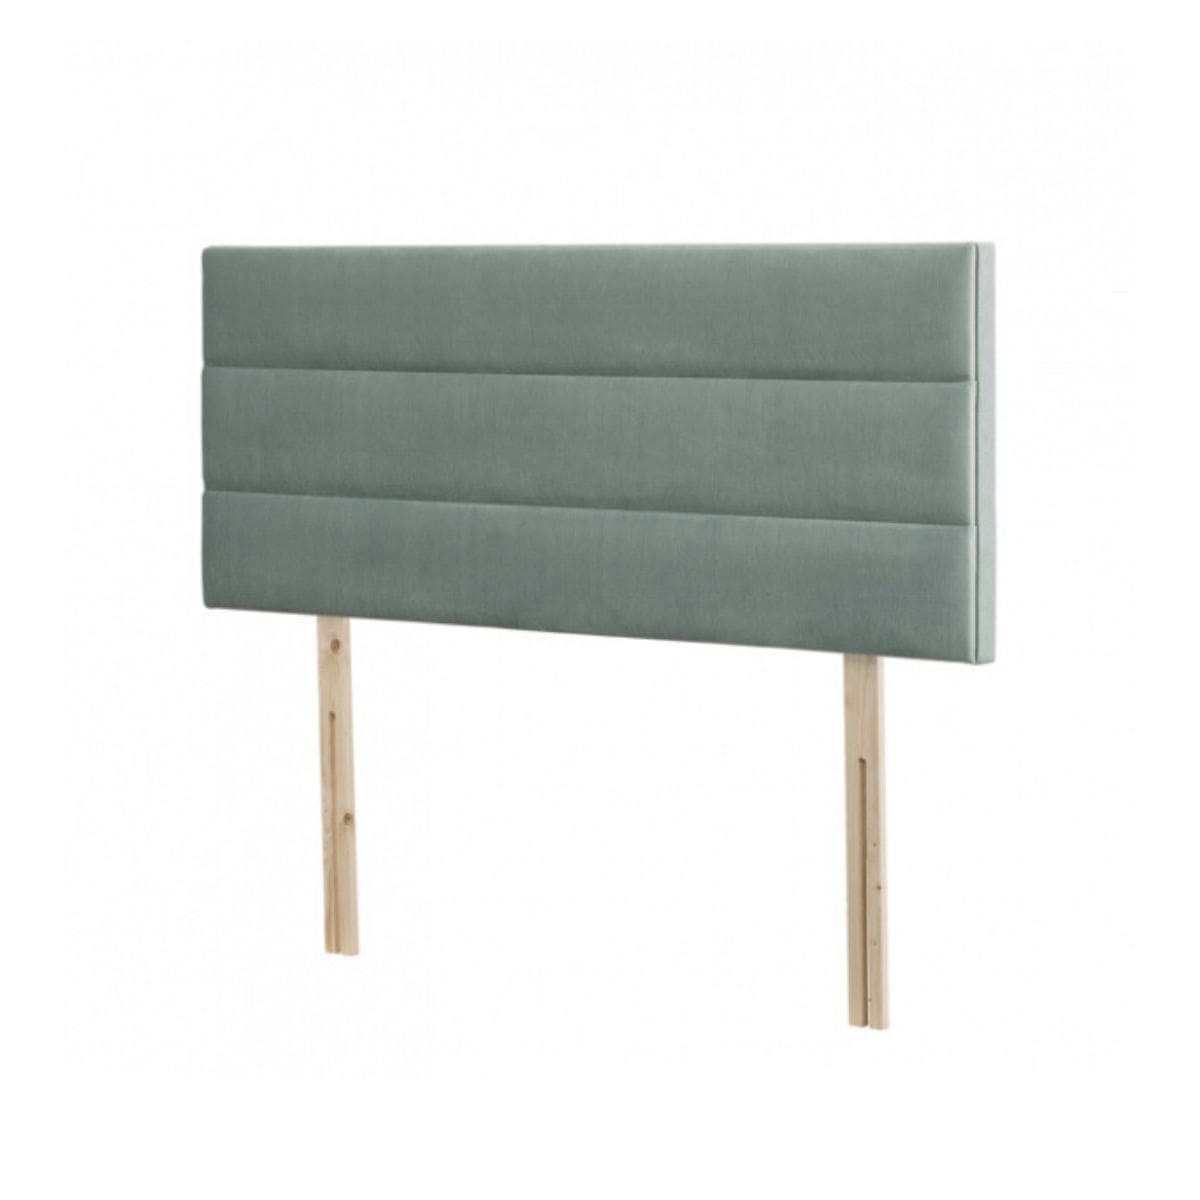 Emerald 3 Row Fabric Headboard By Respa Corcorans Furniture Carpets